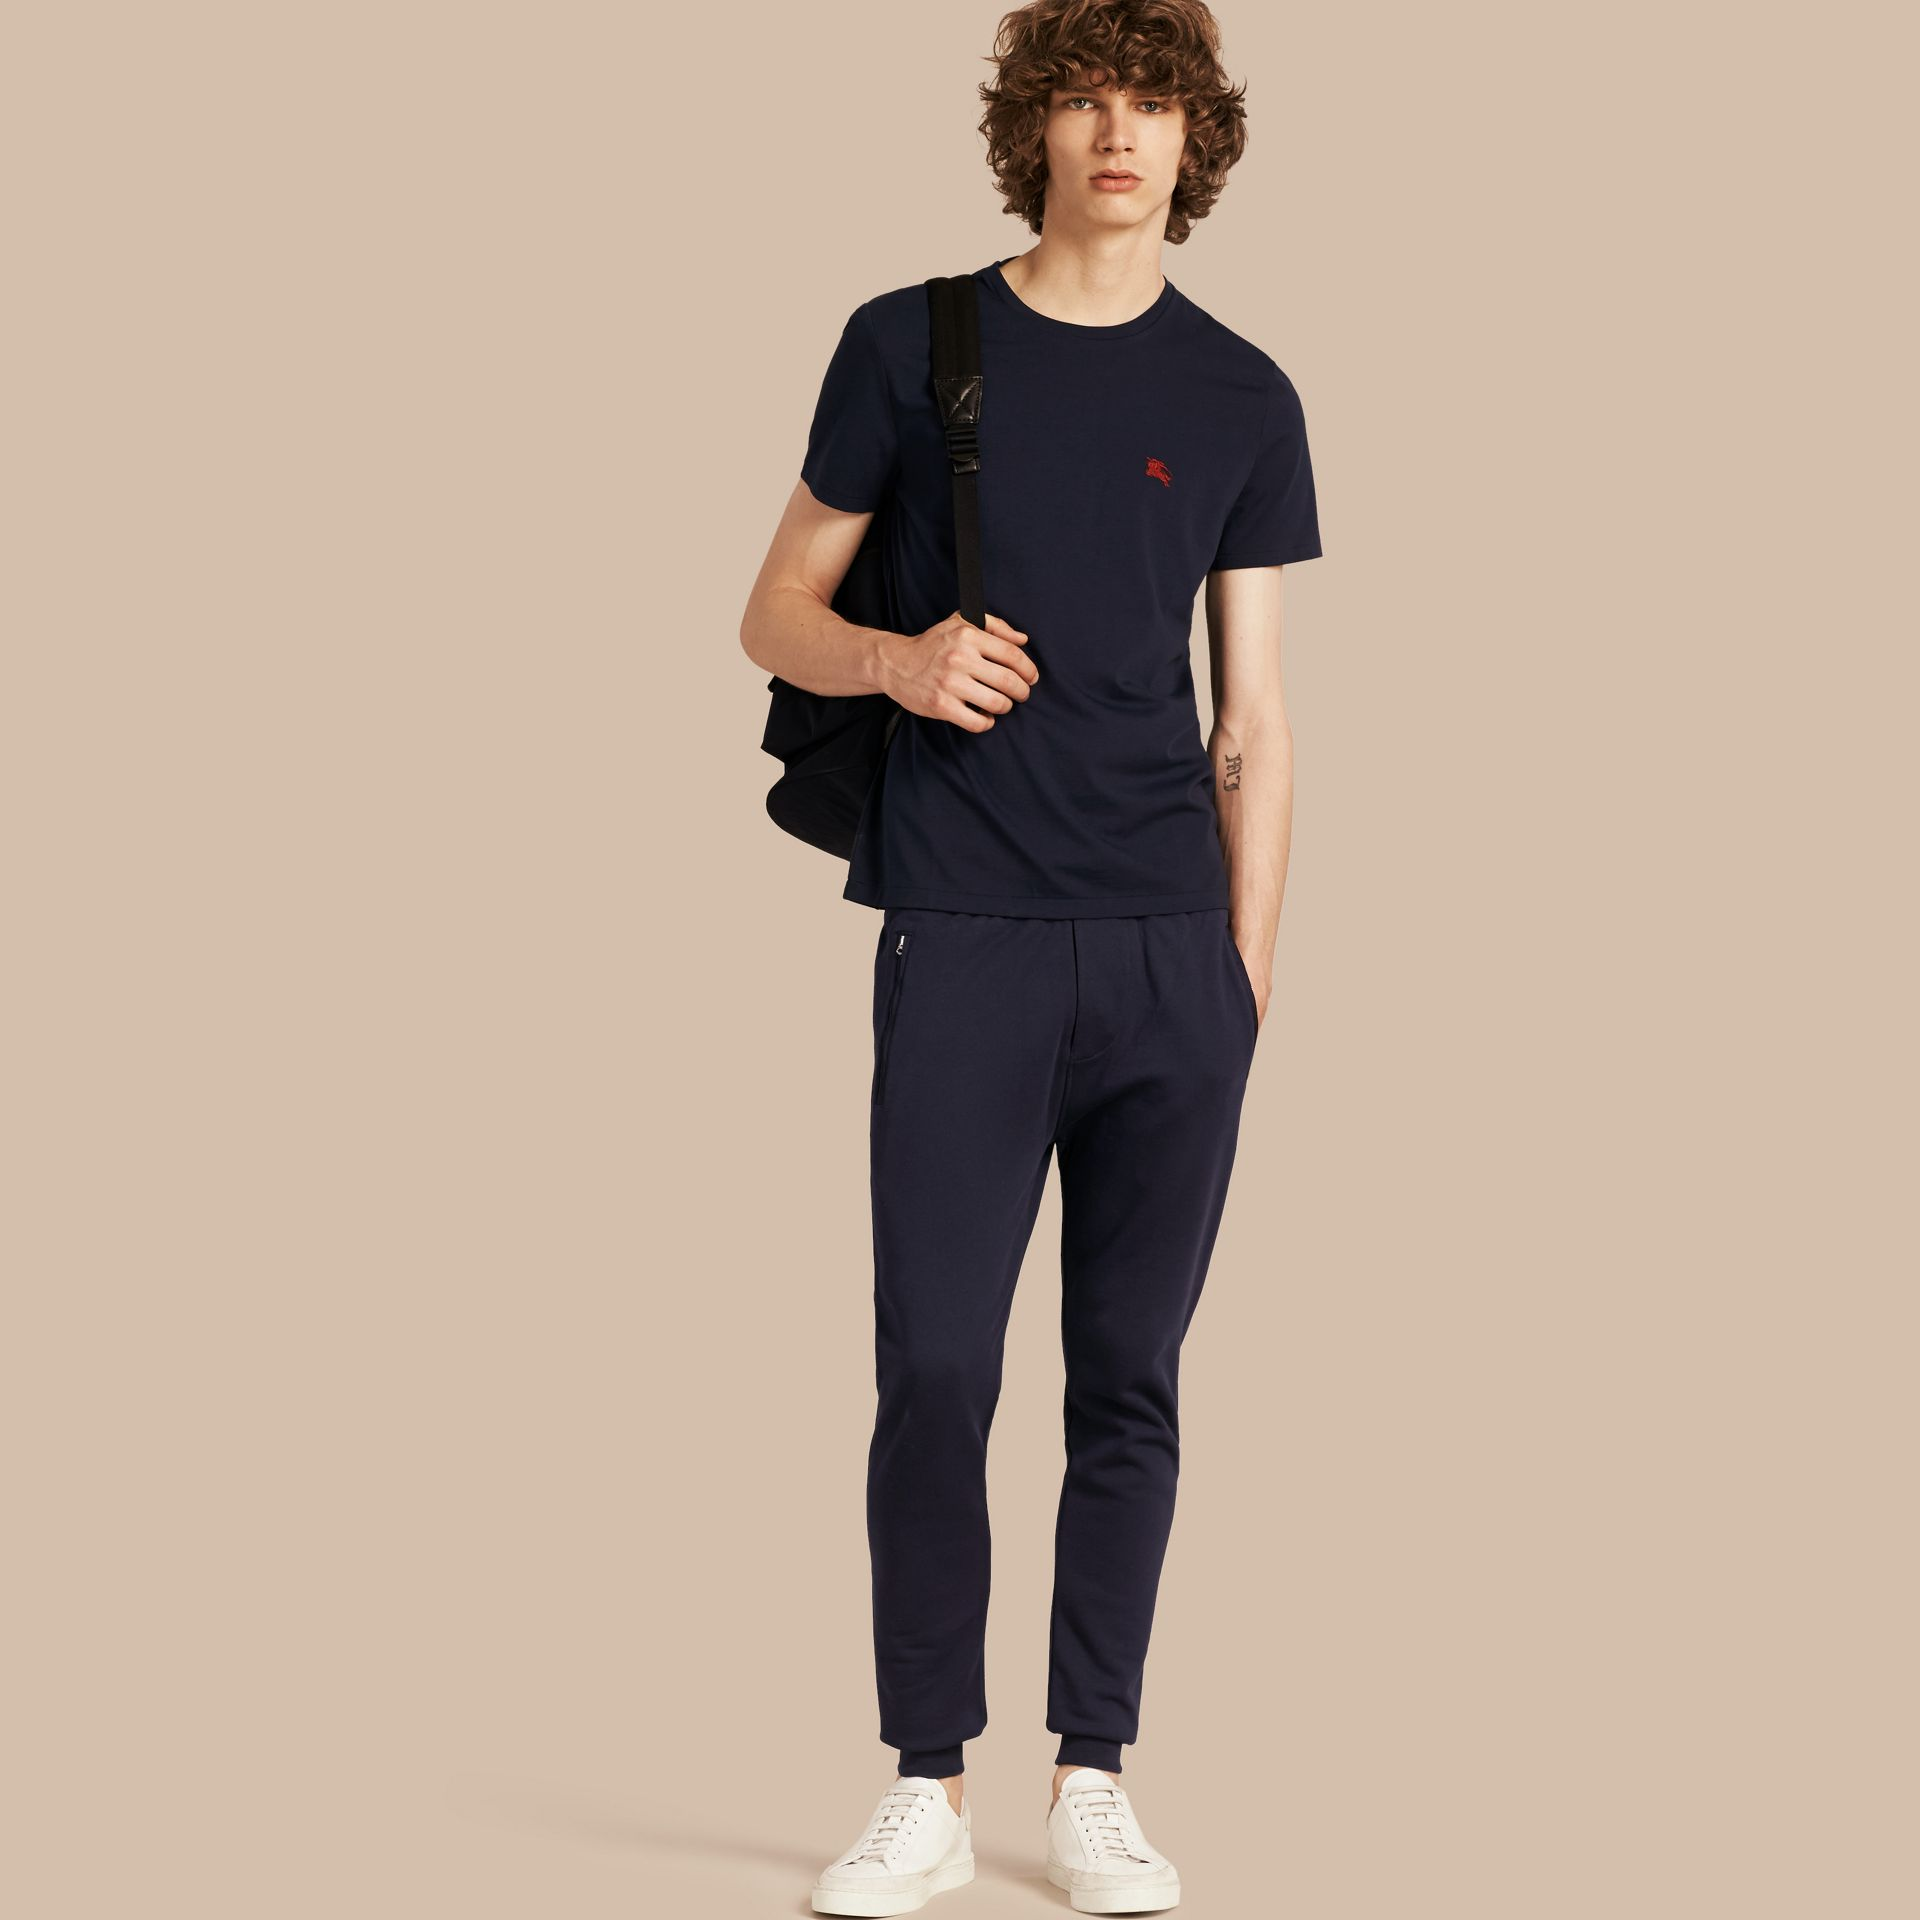 Marine Pantalon de survêtement en coton Marine - photo de la galerie 1